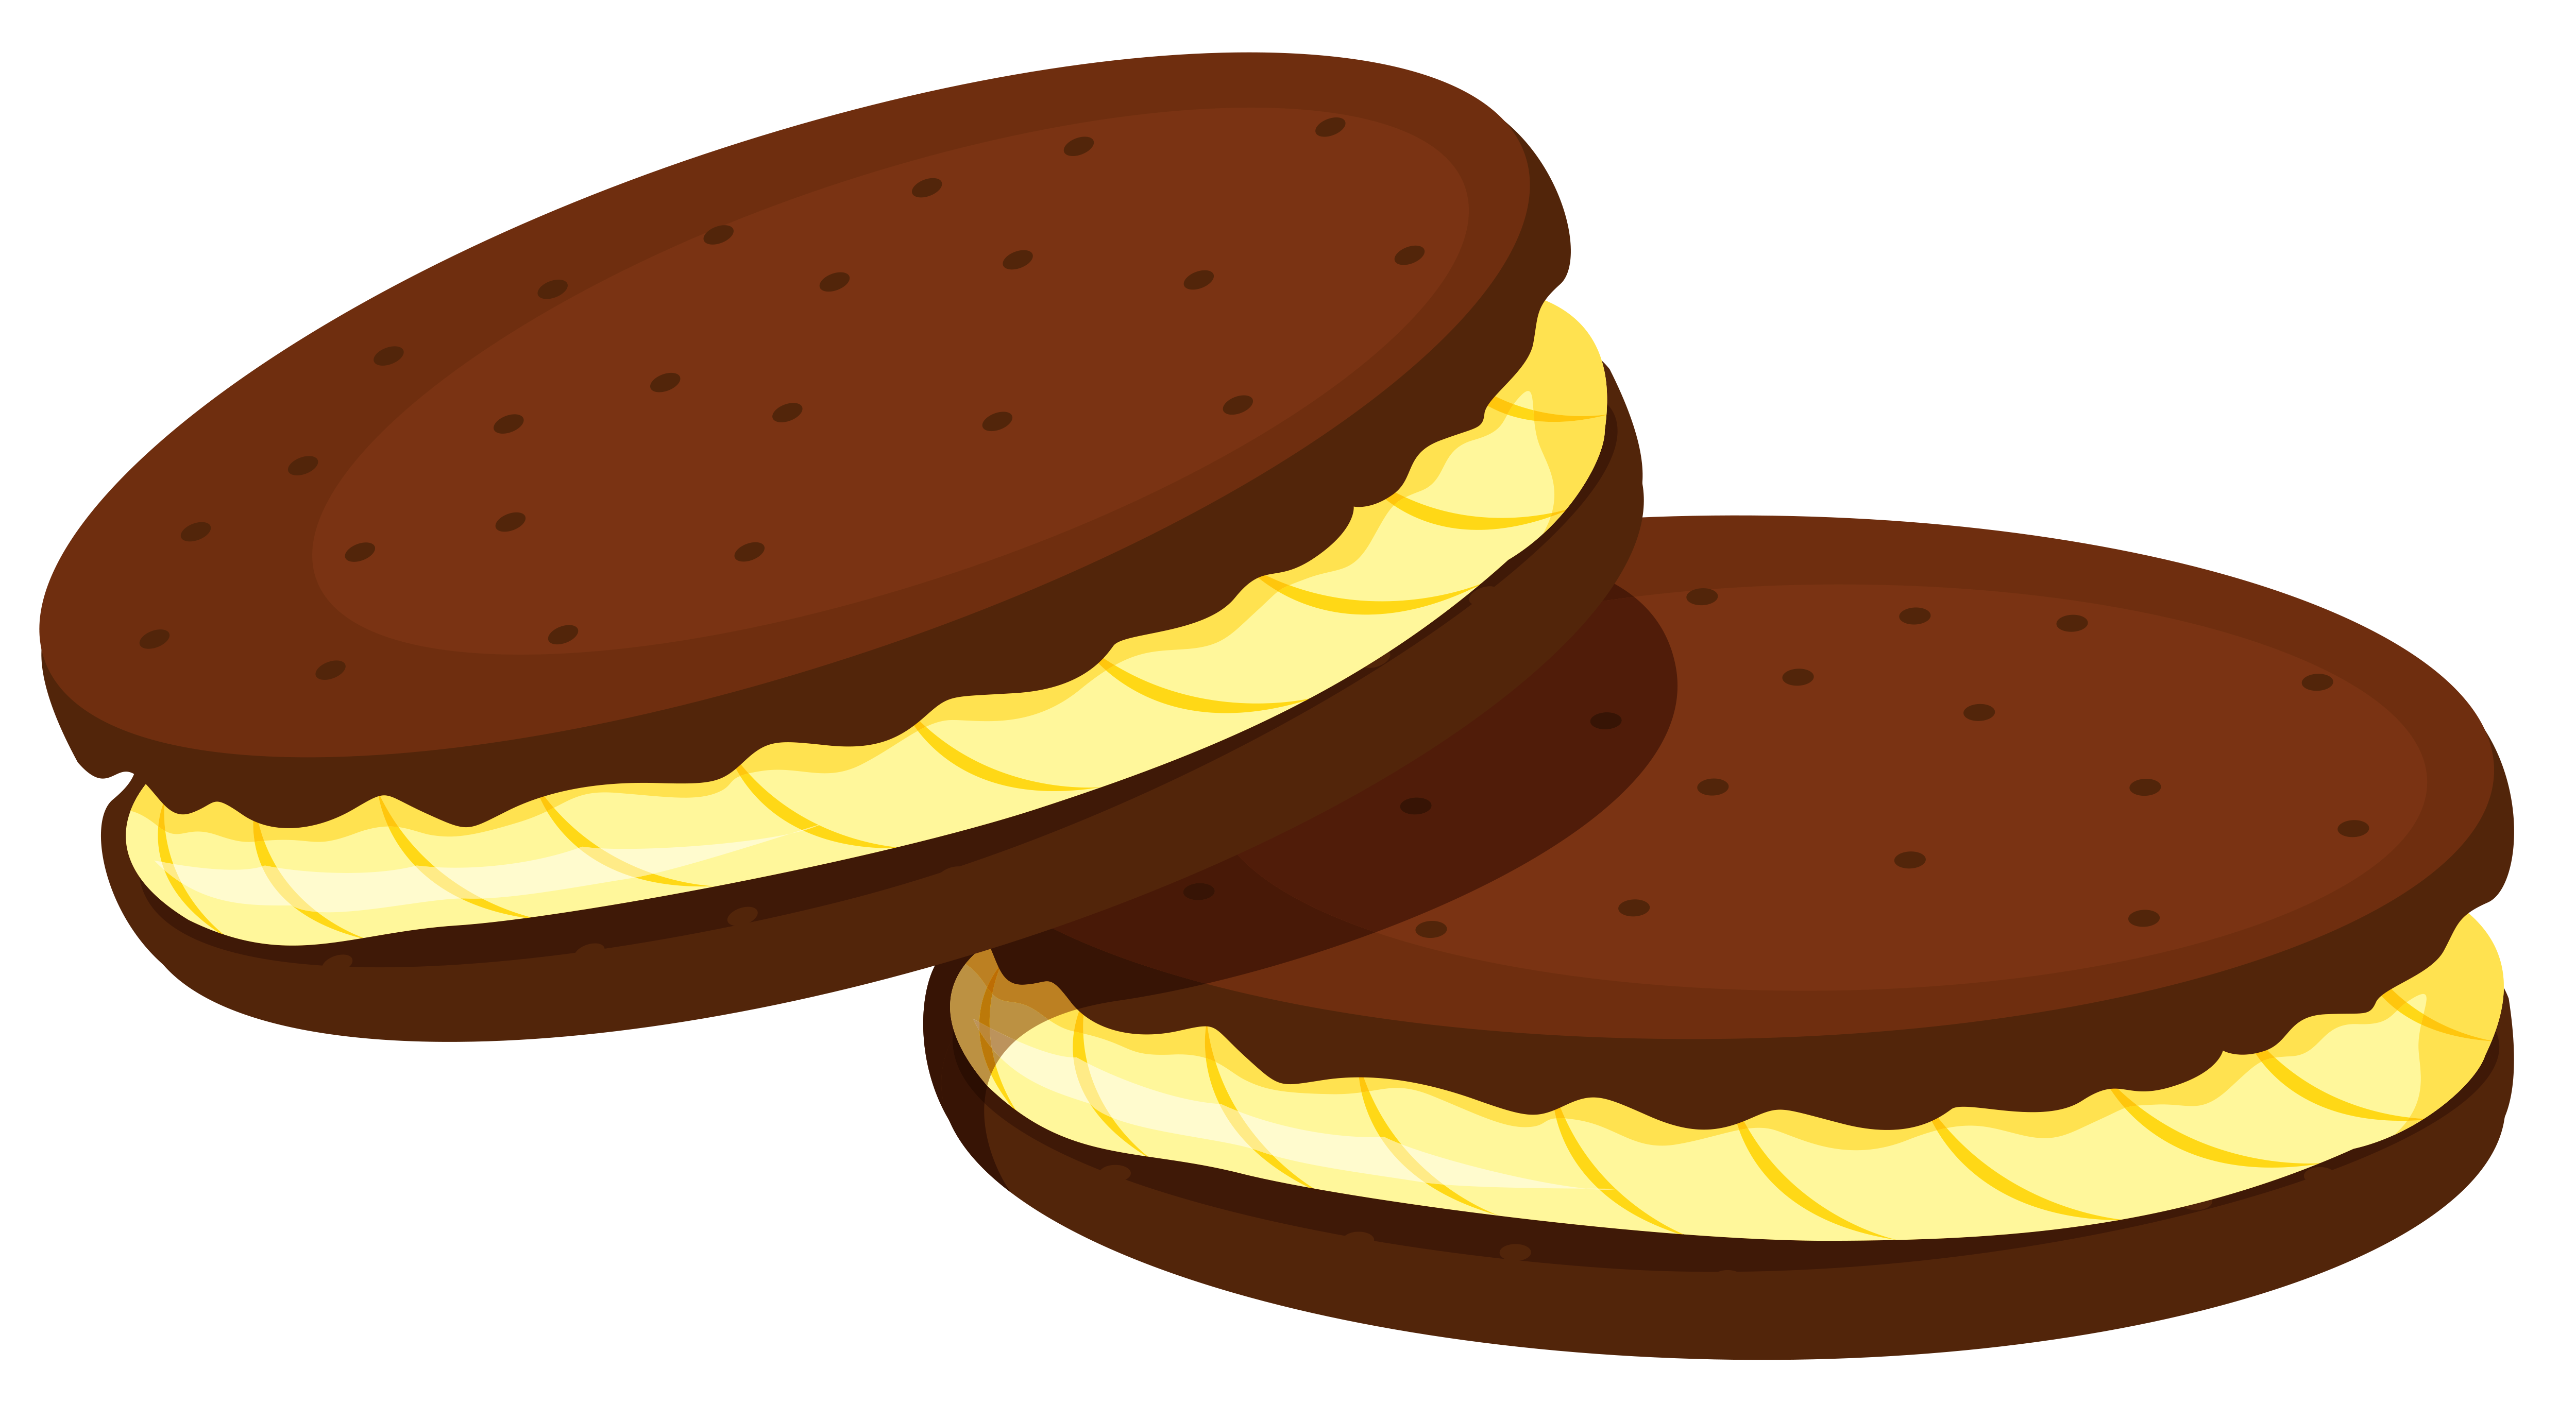 Cookies clipart png. Cocoa sandwich biscuit picture